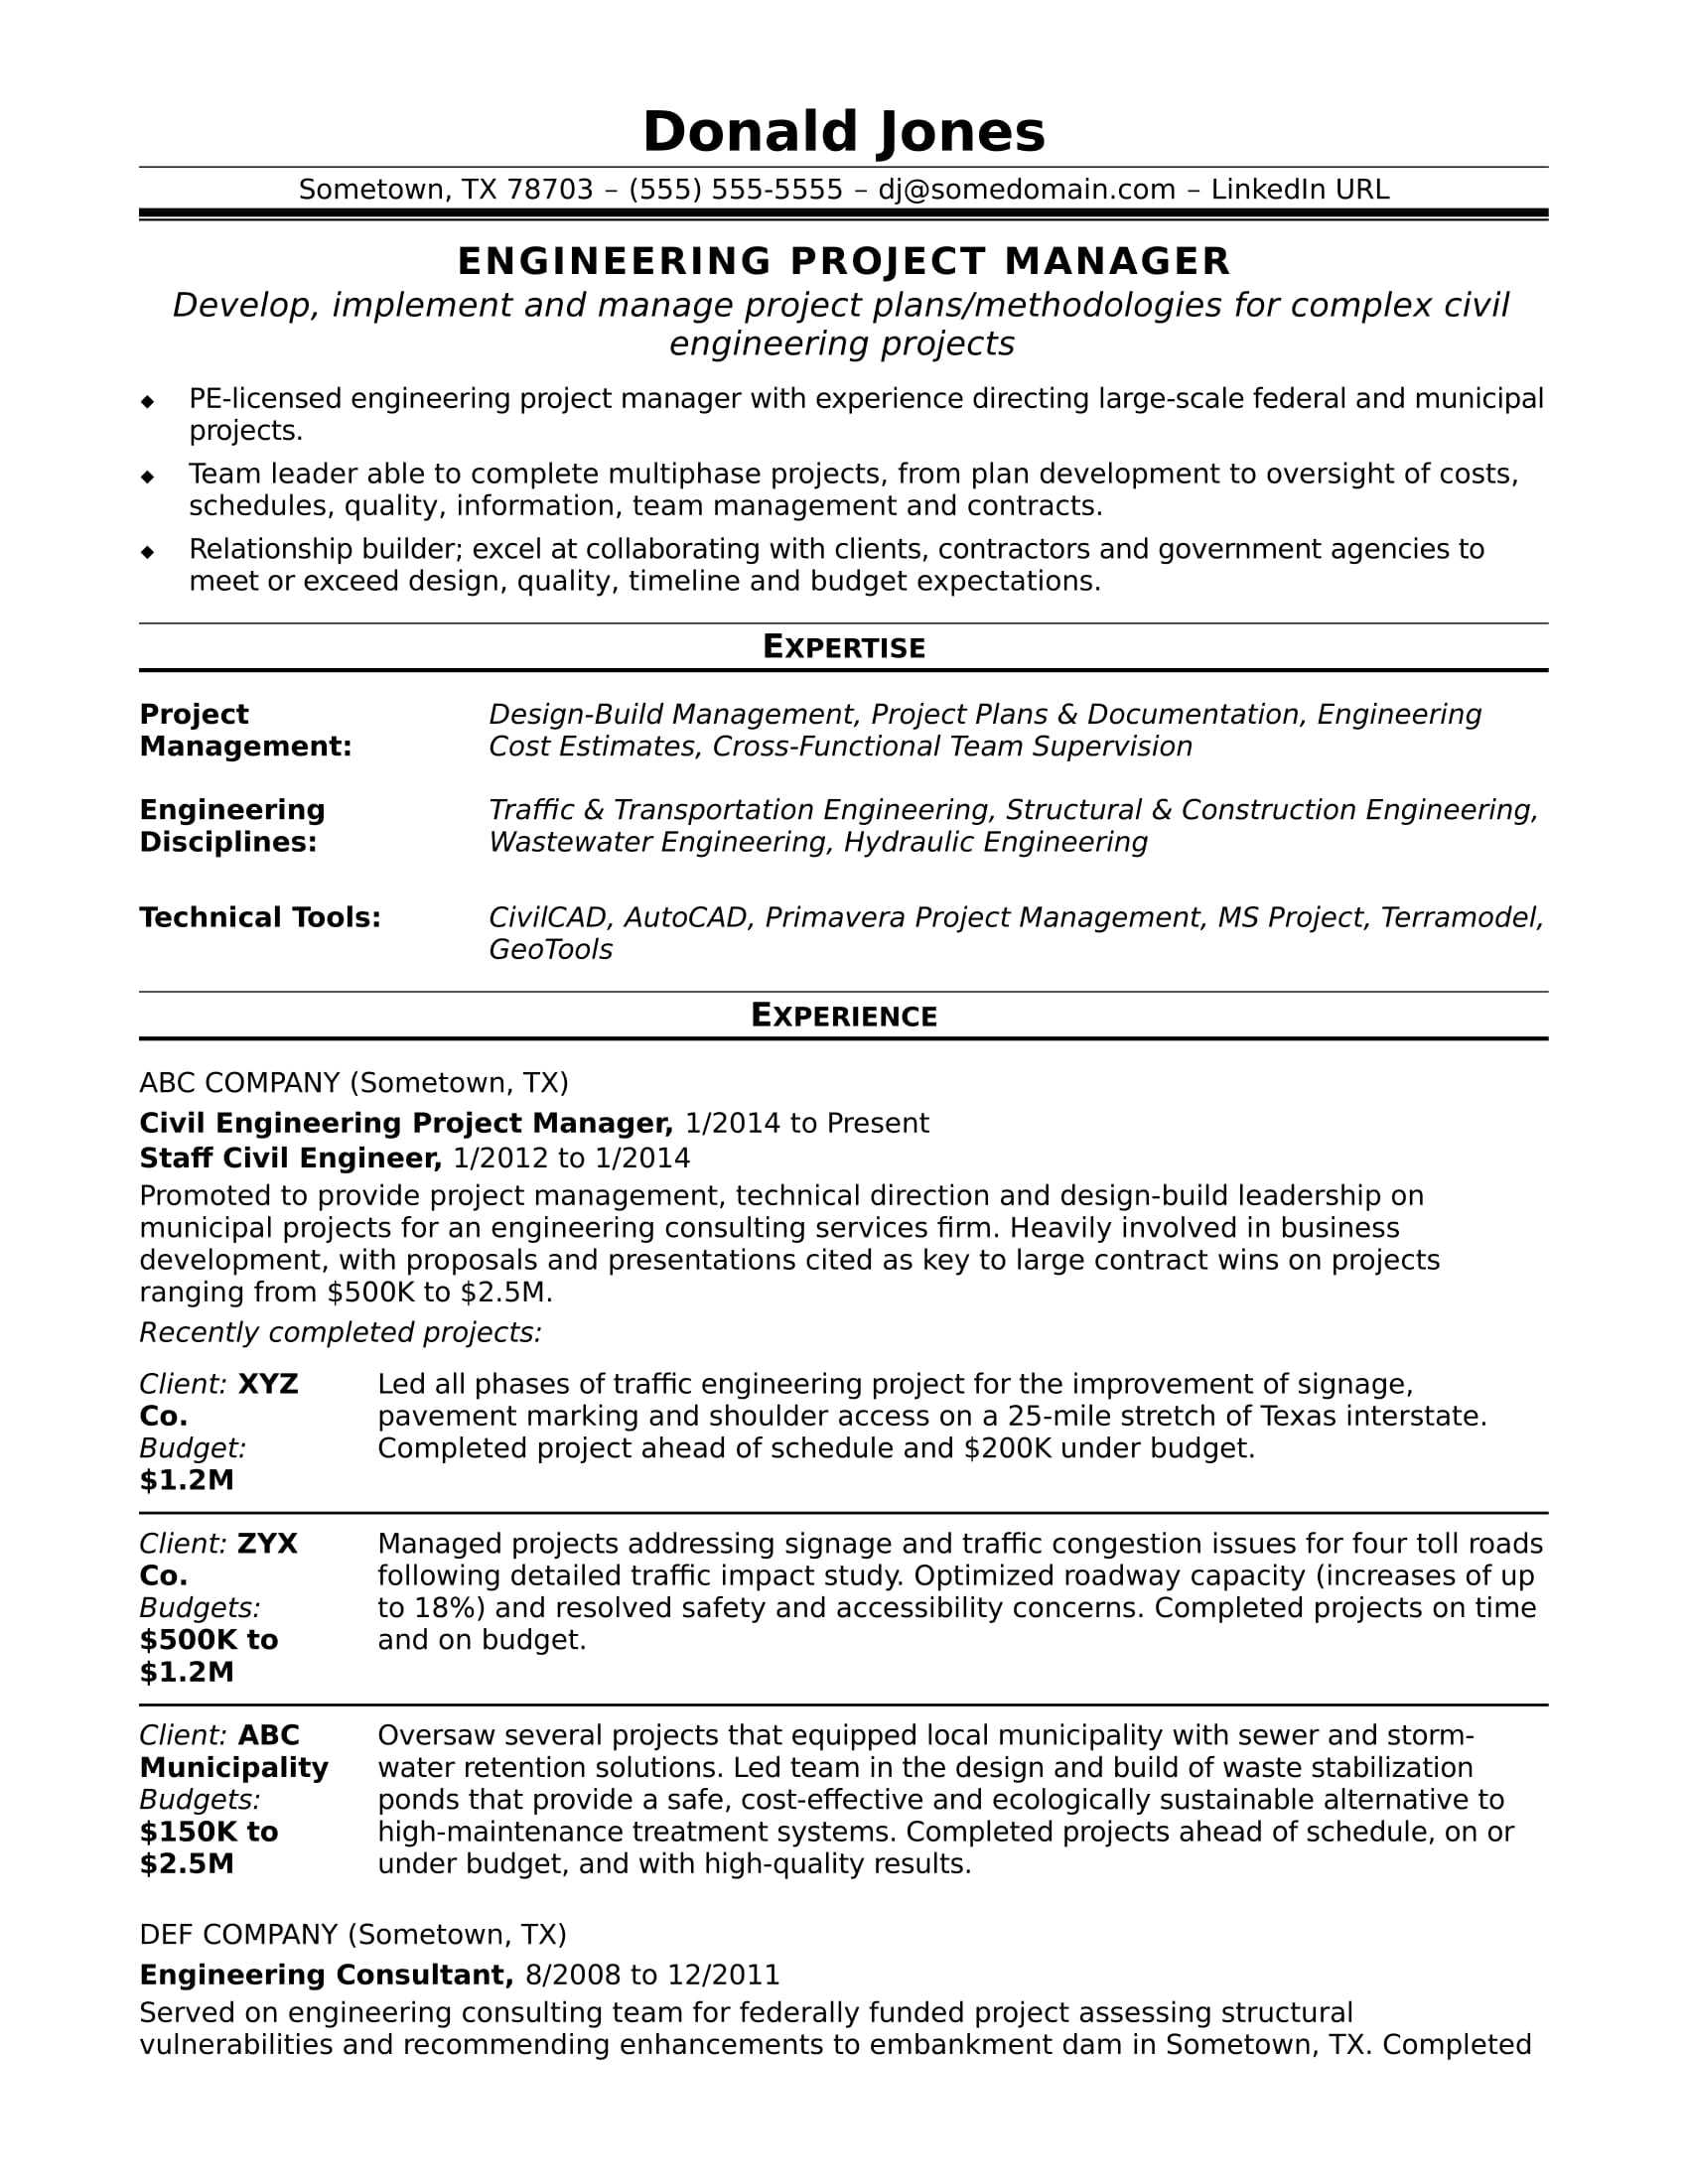 Sample Resume for a Midlevel Engineering Project Manager | Monster.com